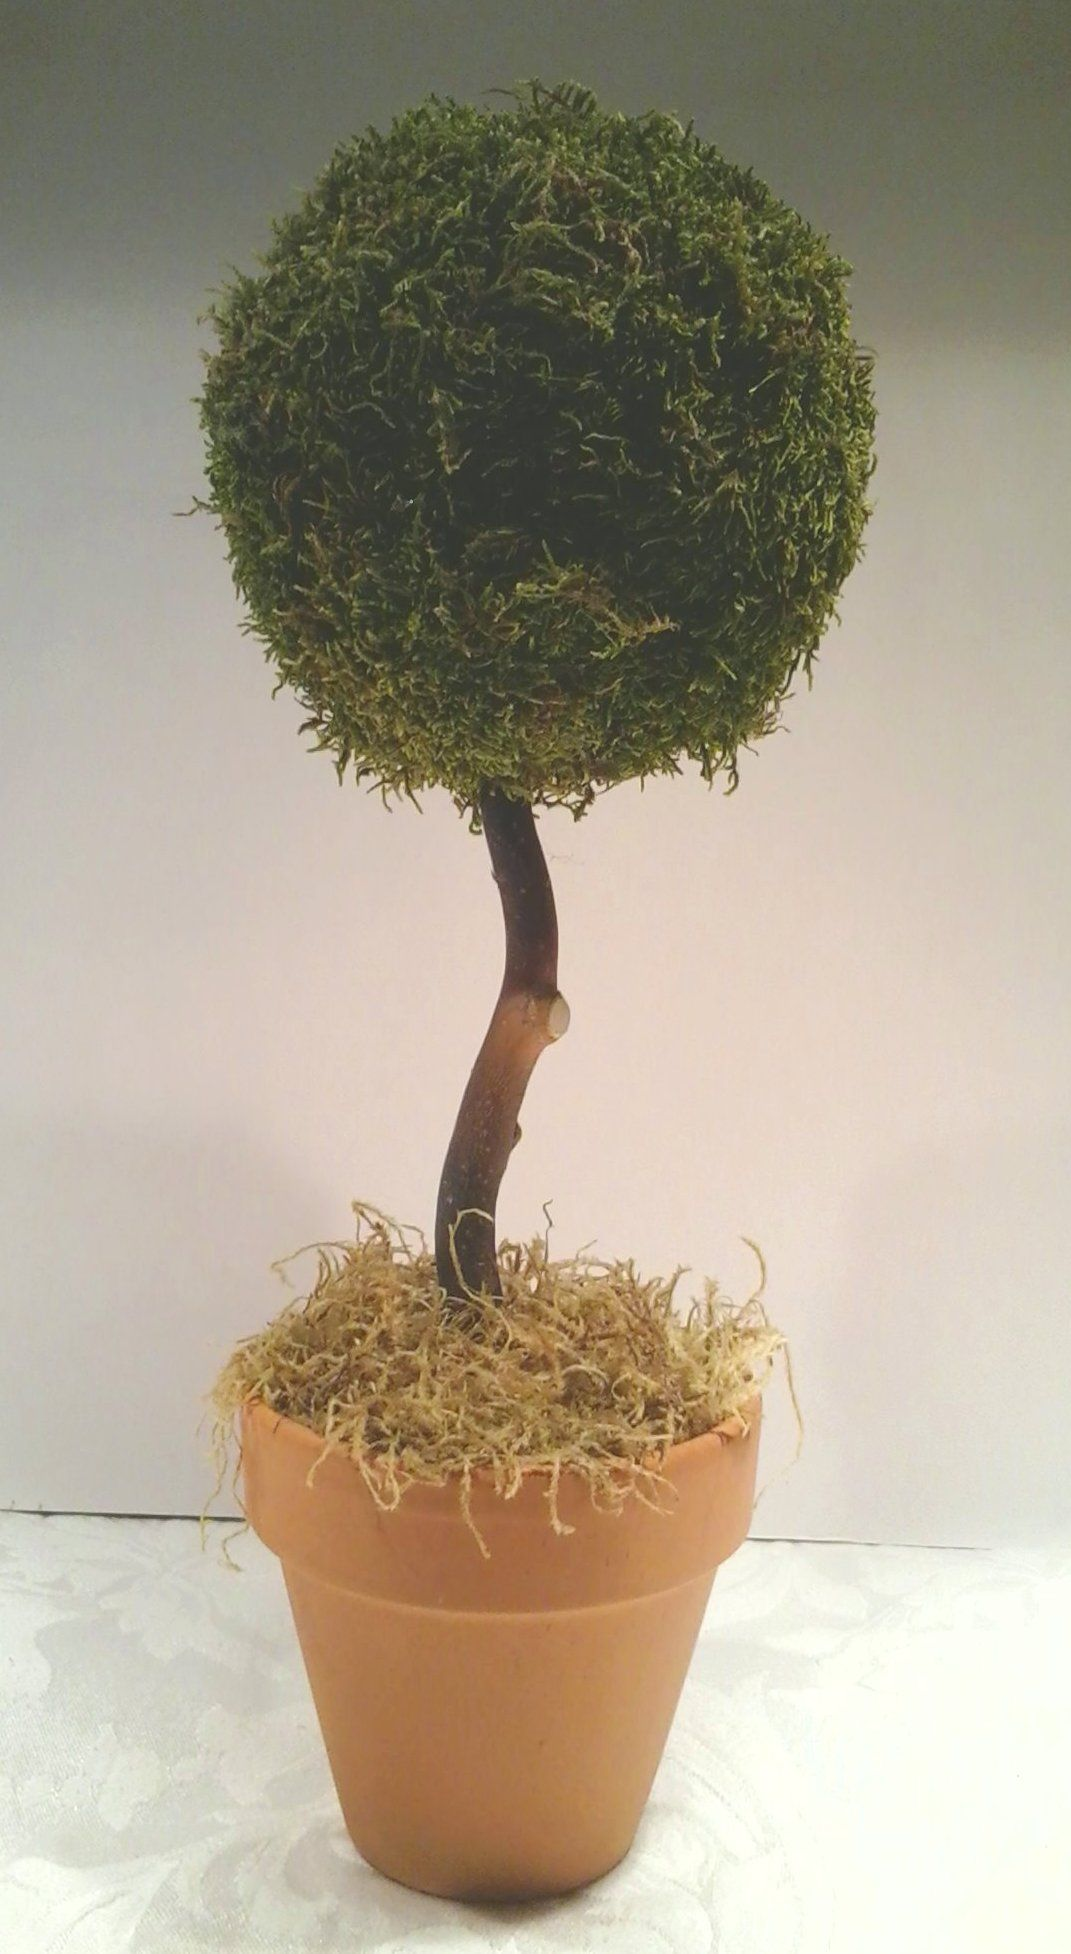 Topiary I made with live Sheet Moss from Joshsfrogs.com for my son's wedding.